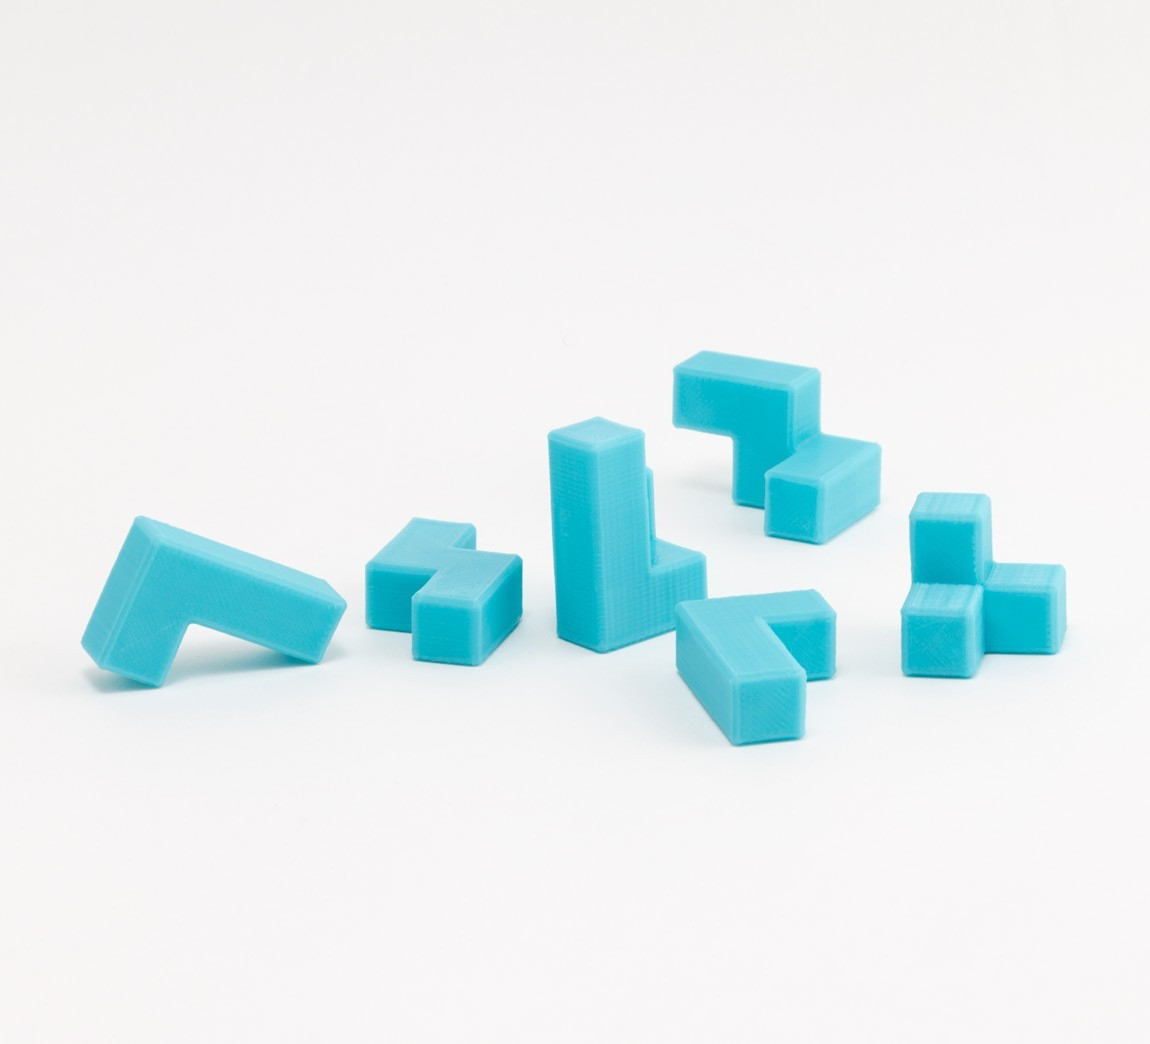 d64ce7058b6cf772dbf471deb58d92d2_1443221255903_NMD000317-046_@2x.jpg Download free STL file 3x3 Puzzle Cube • Object to 3D print, FerryTeacher